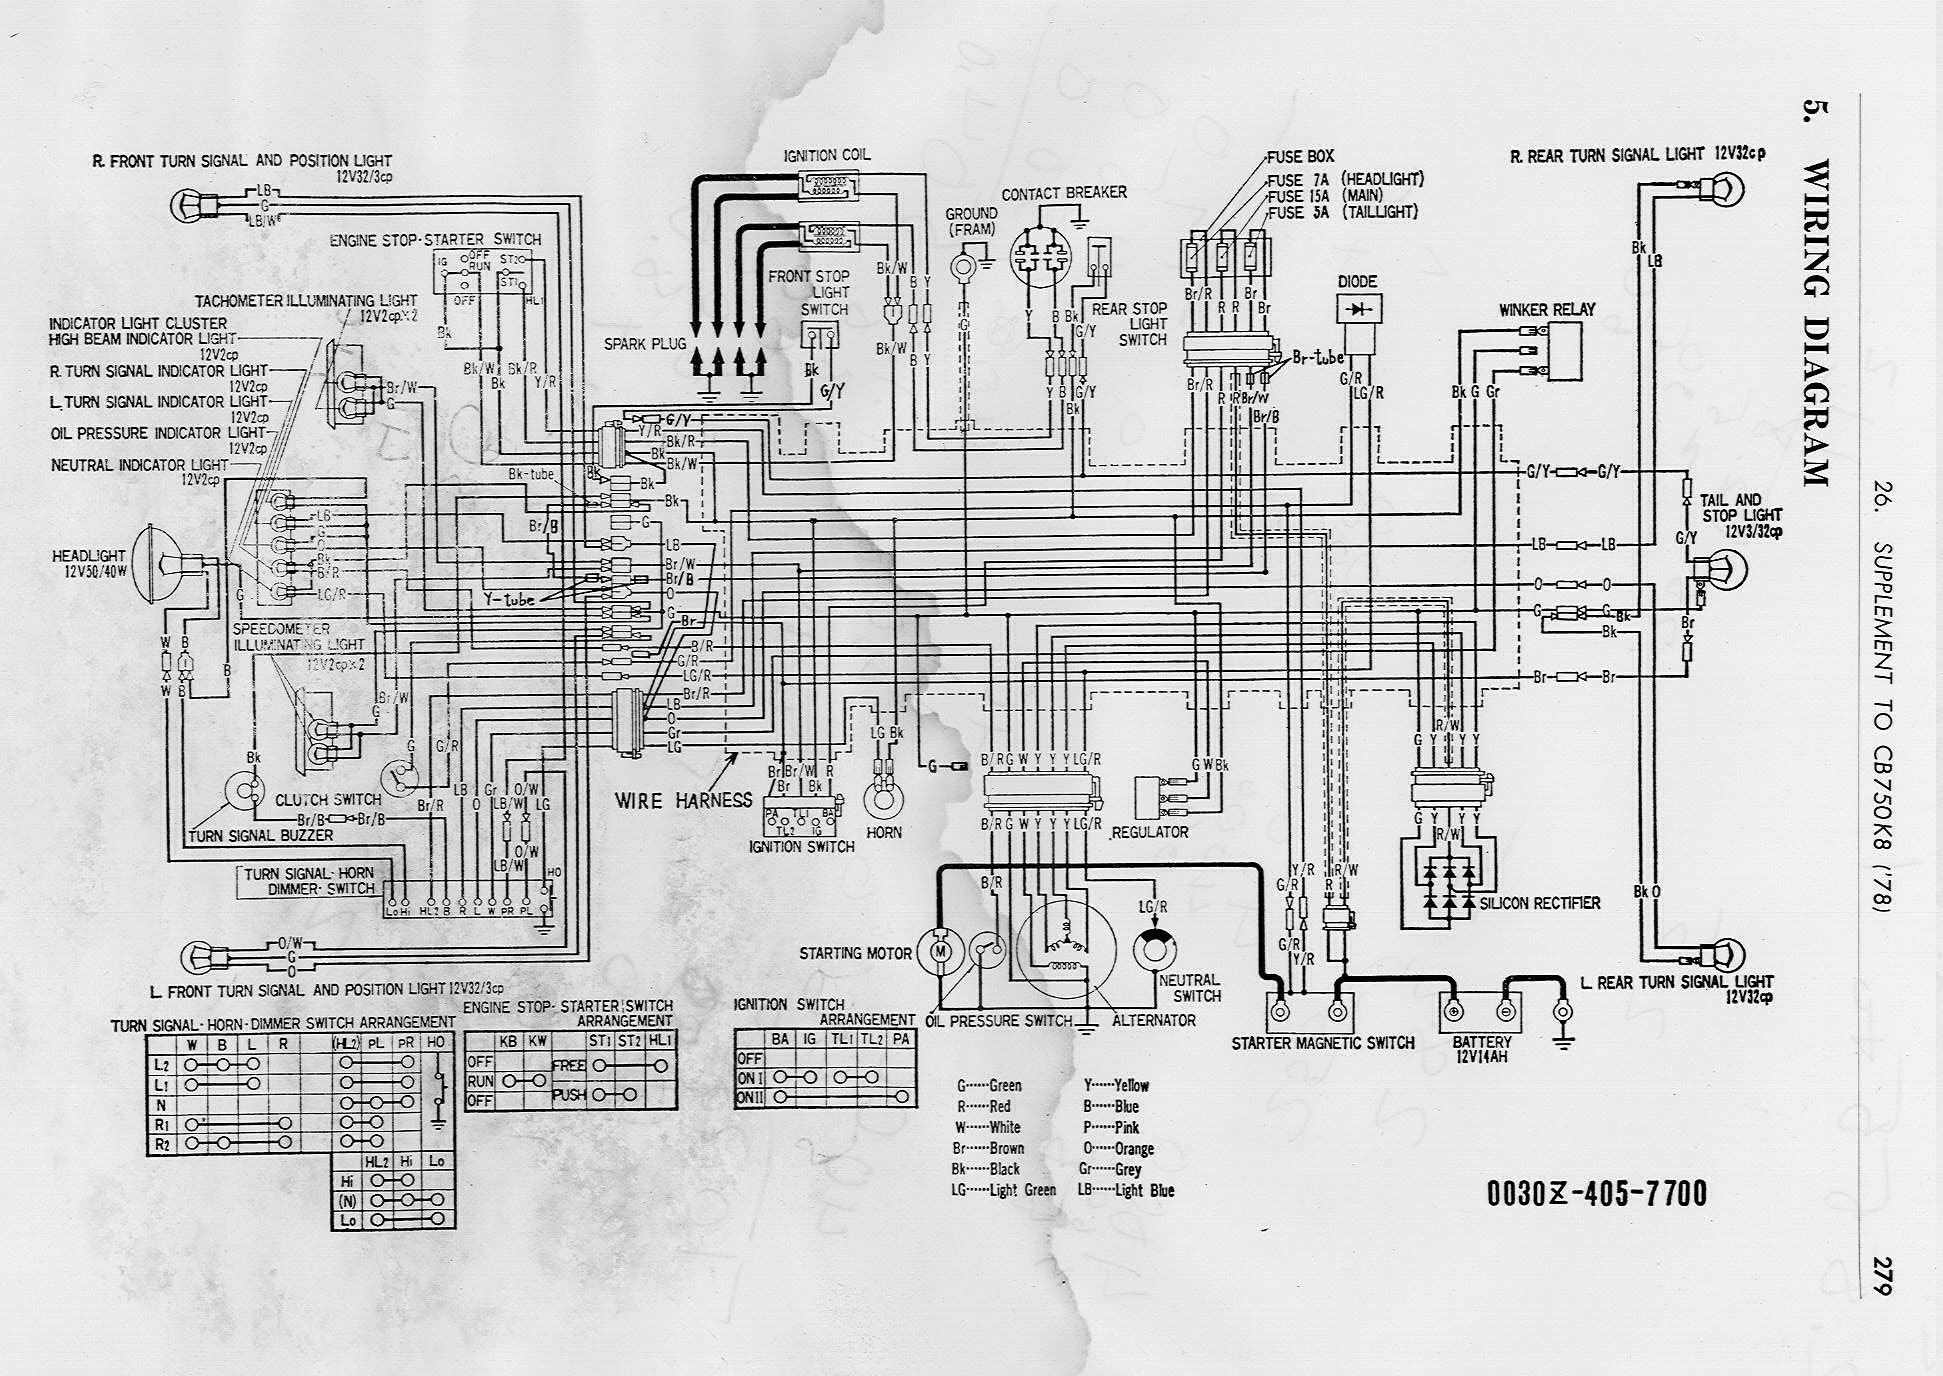 Honda 250sx Wiring Diagram, Honda, Free Engine Image For